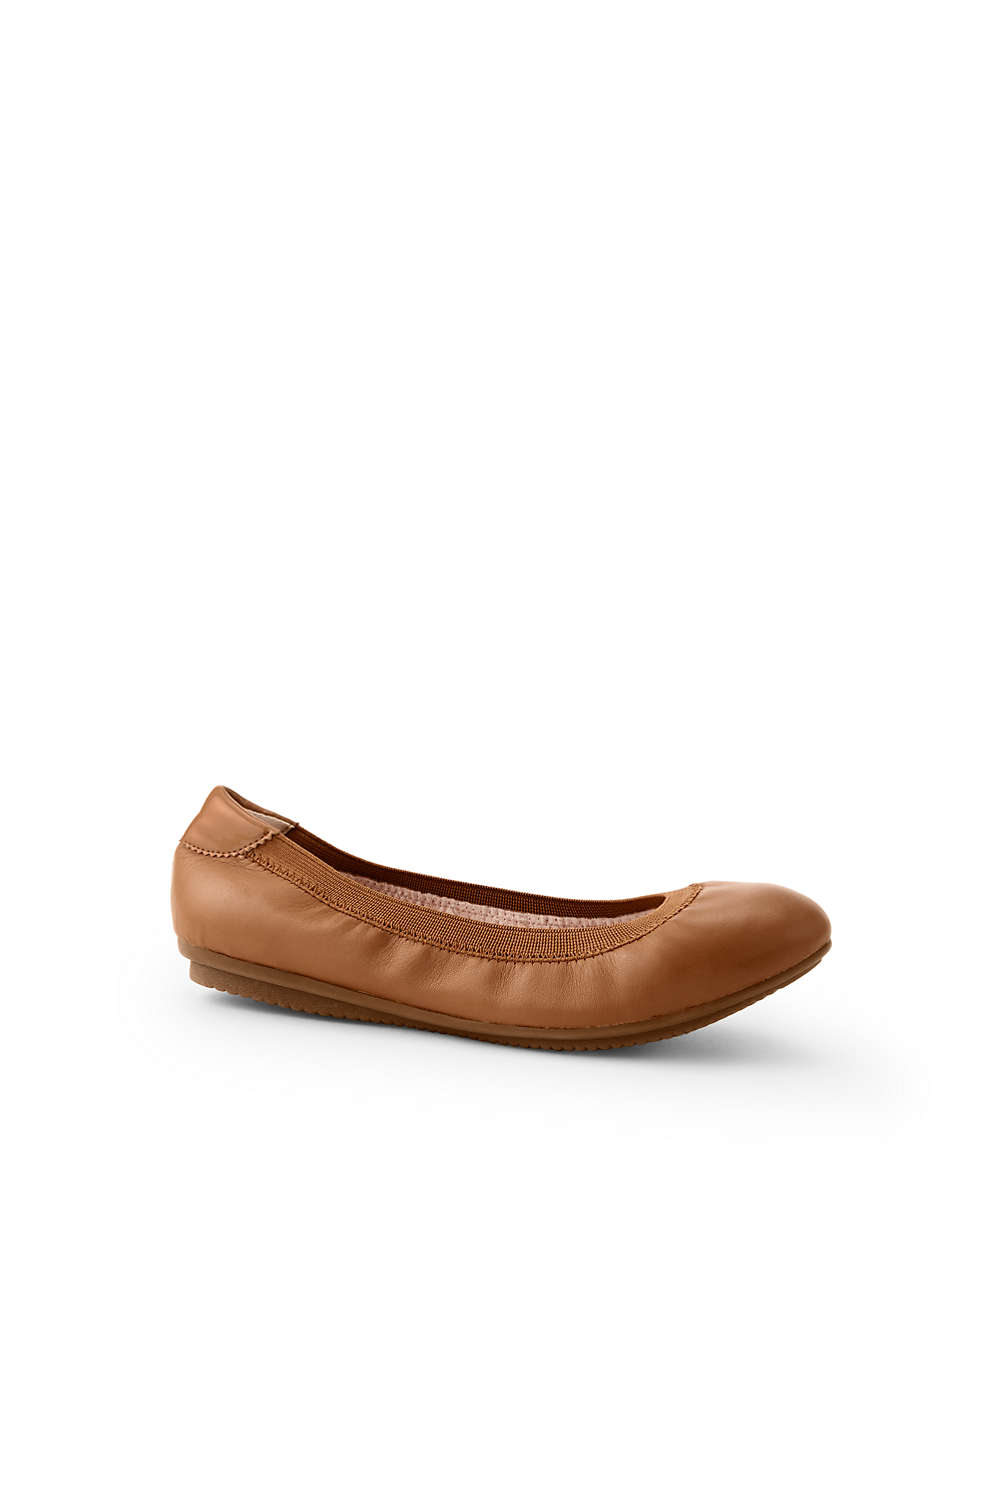 3a1b1860df2a9 Womens Wide Comfort Elastic Ballet Flats from Lands' End